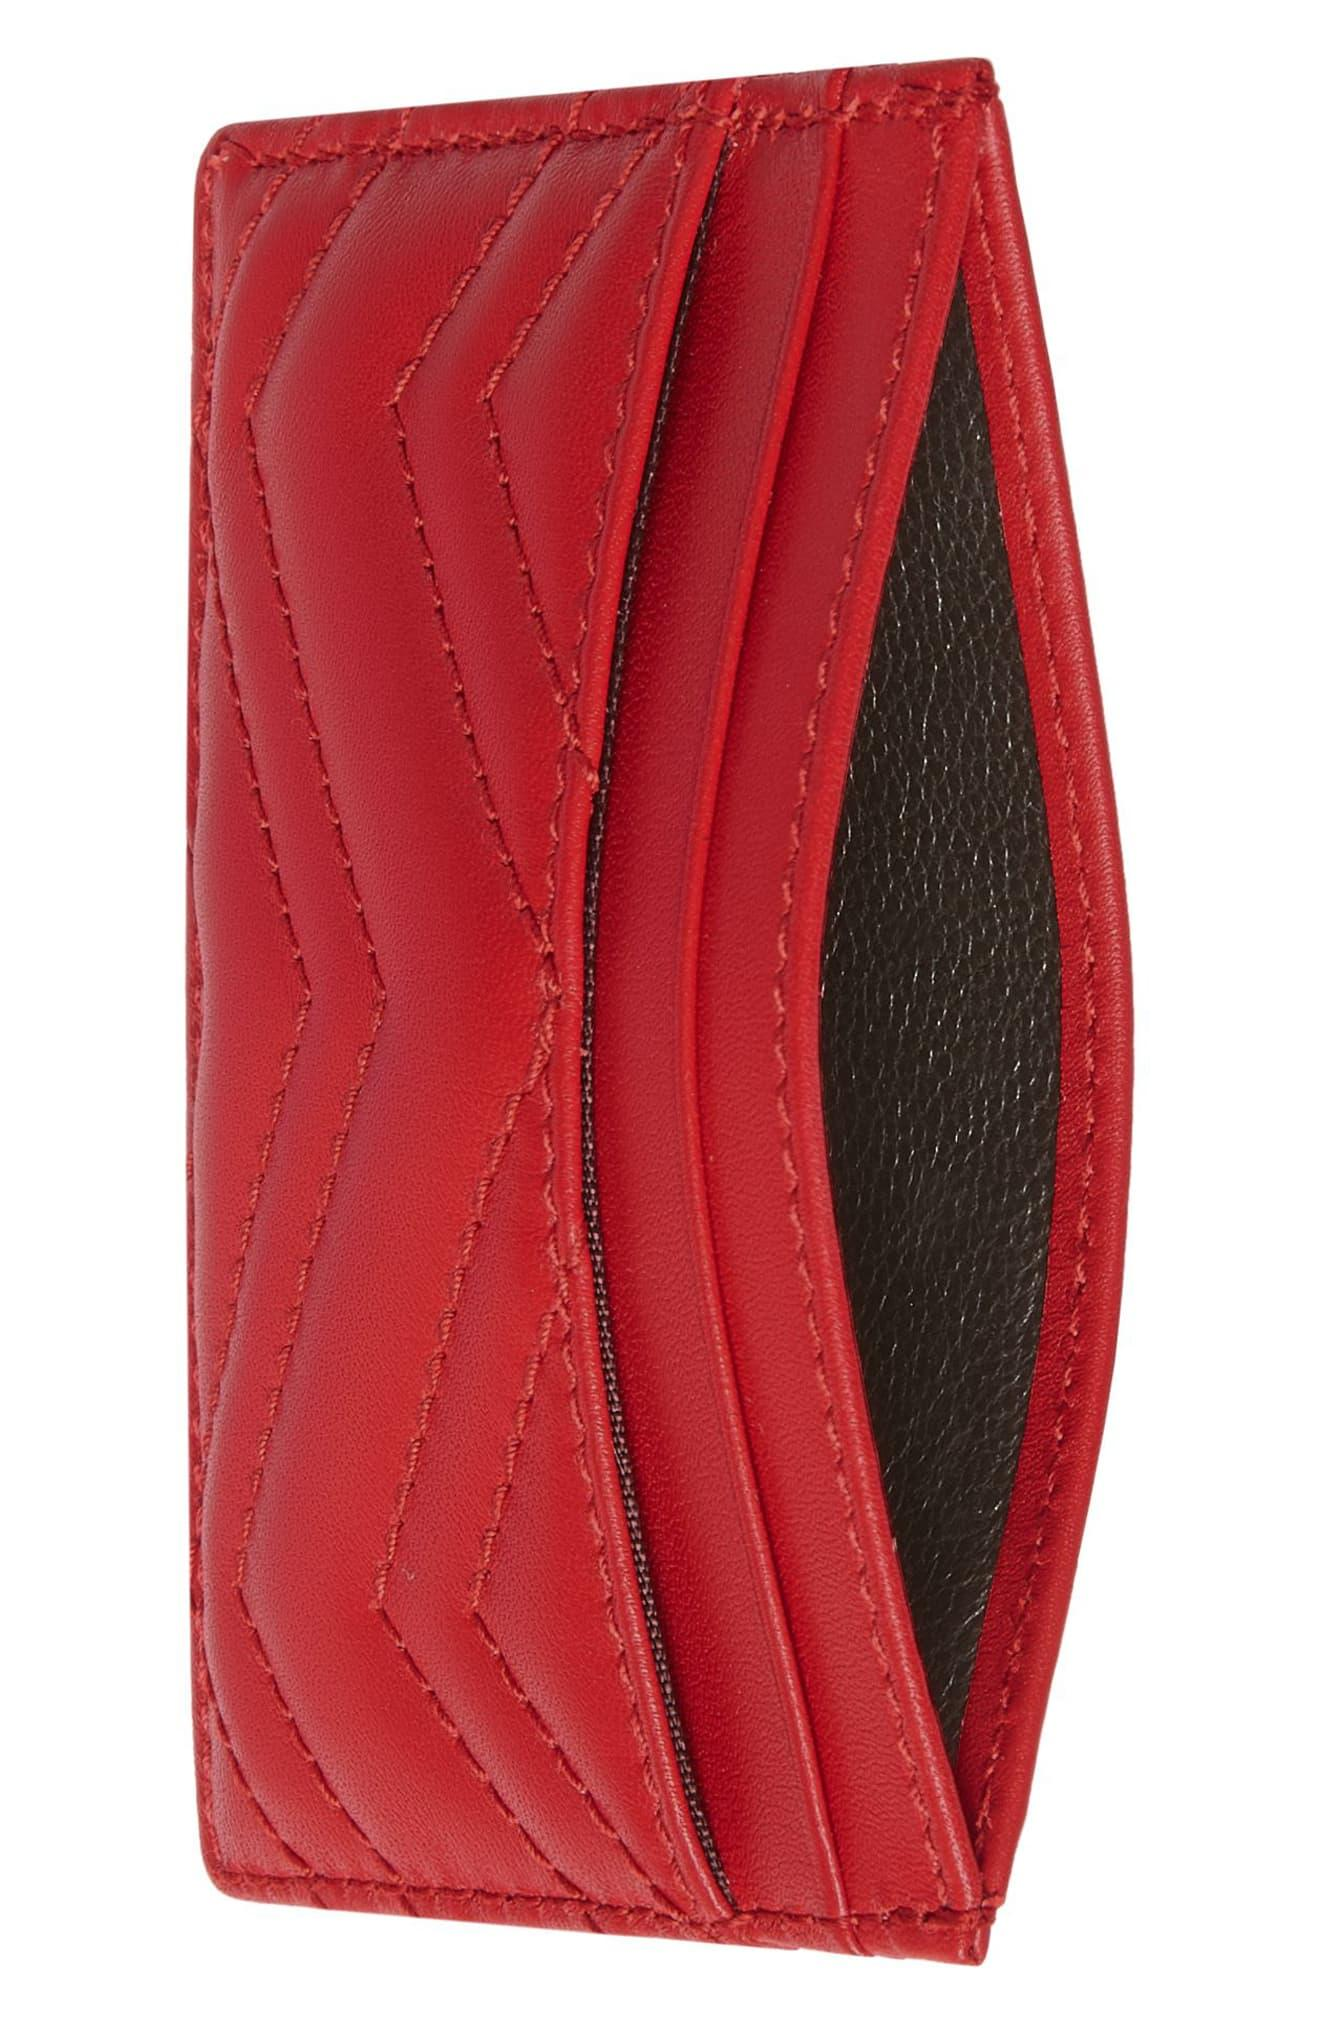 287a6268019162 Gucci - Red Gg Marmont Matelassé Leather Card Case - Lyst. View fullscreen